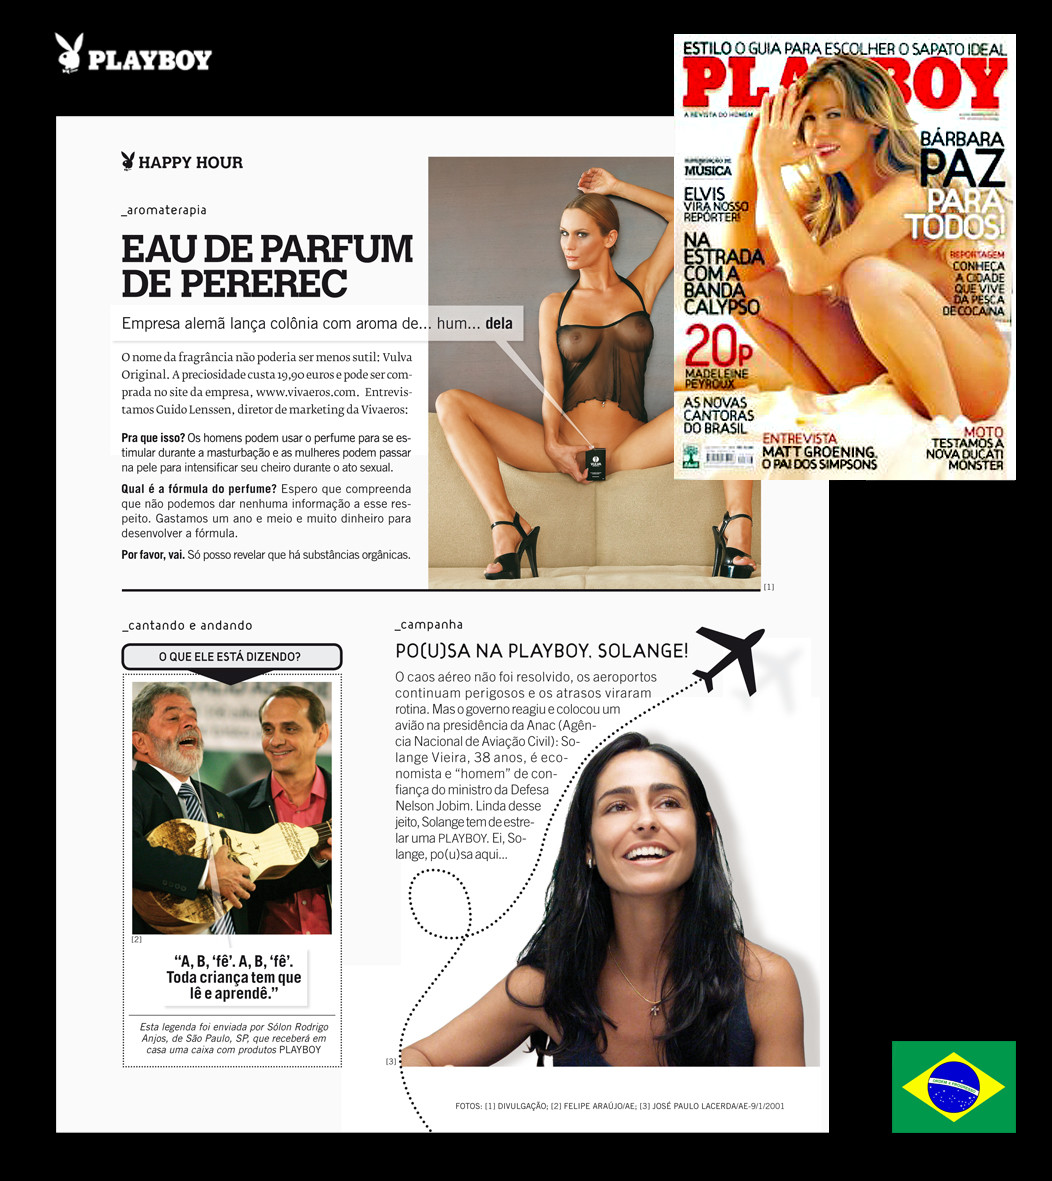 Press_PLAYBOY_BR_Erotic fragrance as an aphrodisiac | VULVA Original